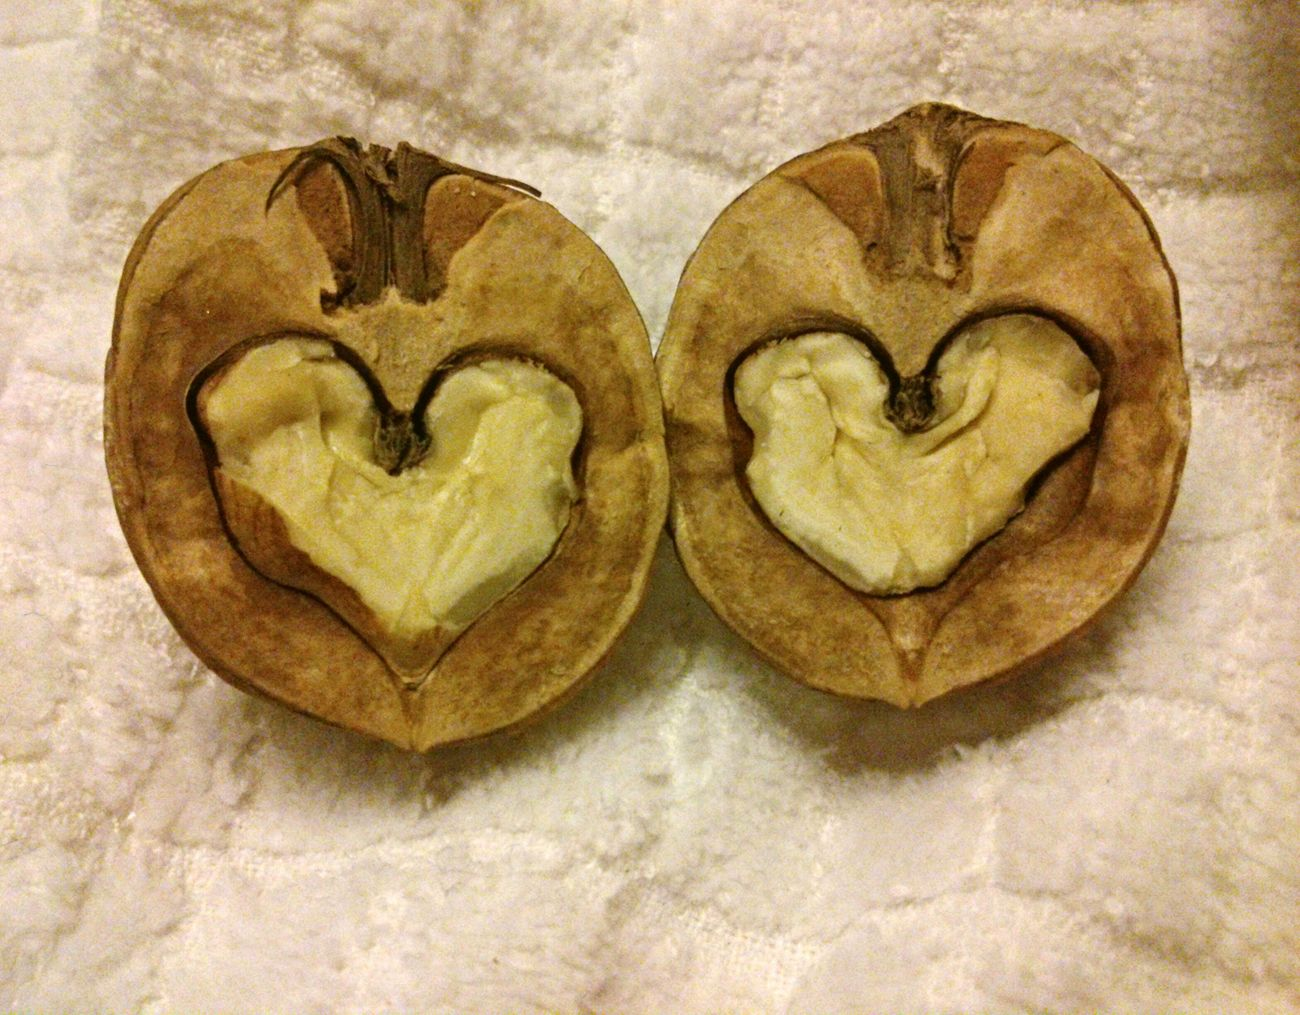 I still have this walnut. Орешек пока цел и хранится... Walnut Heart Coeur De Noix Сердце Грецкого Ореха Walnut Heart Noix Coeur  орех сердце Better Together